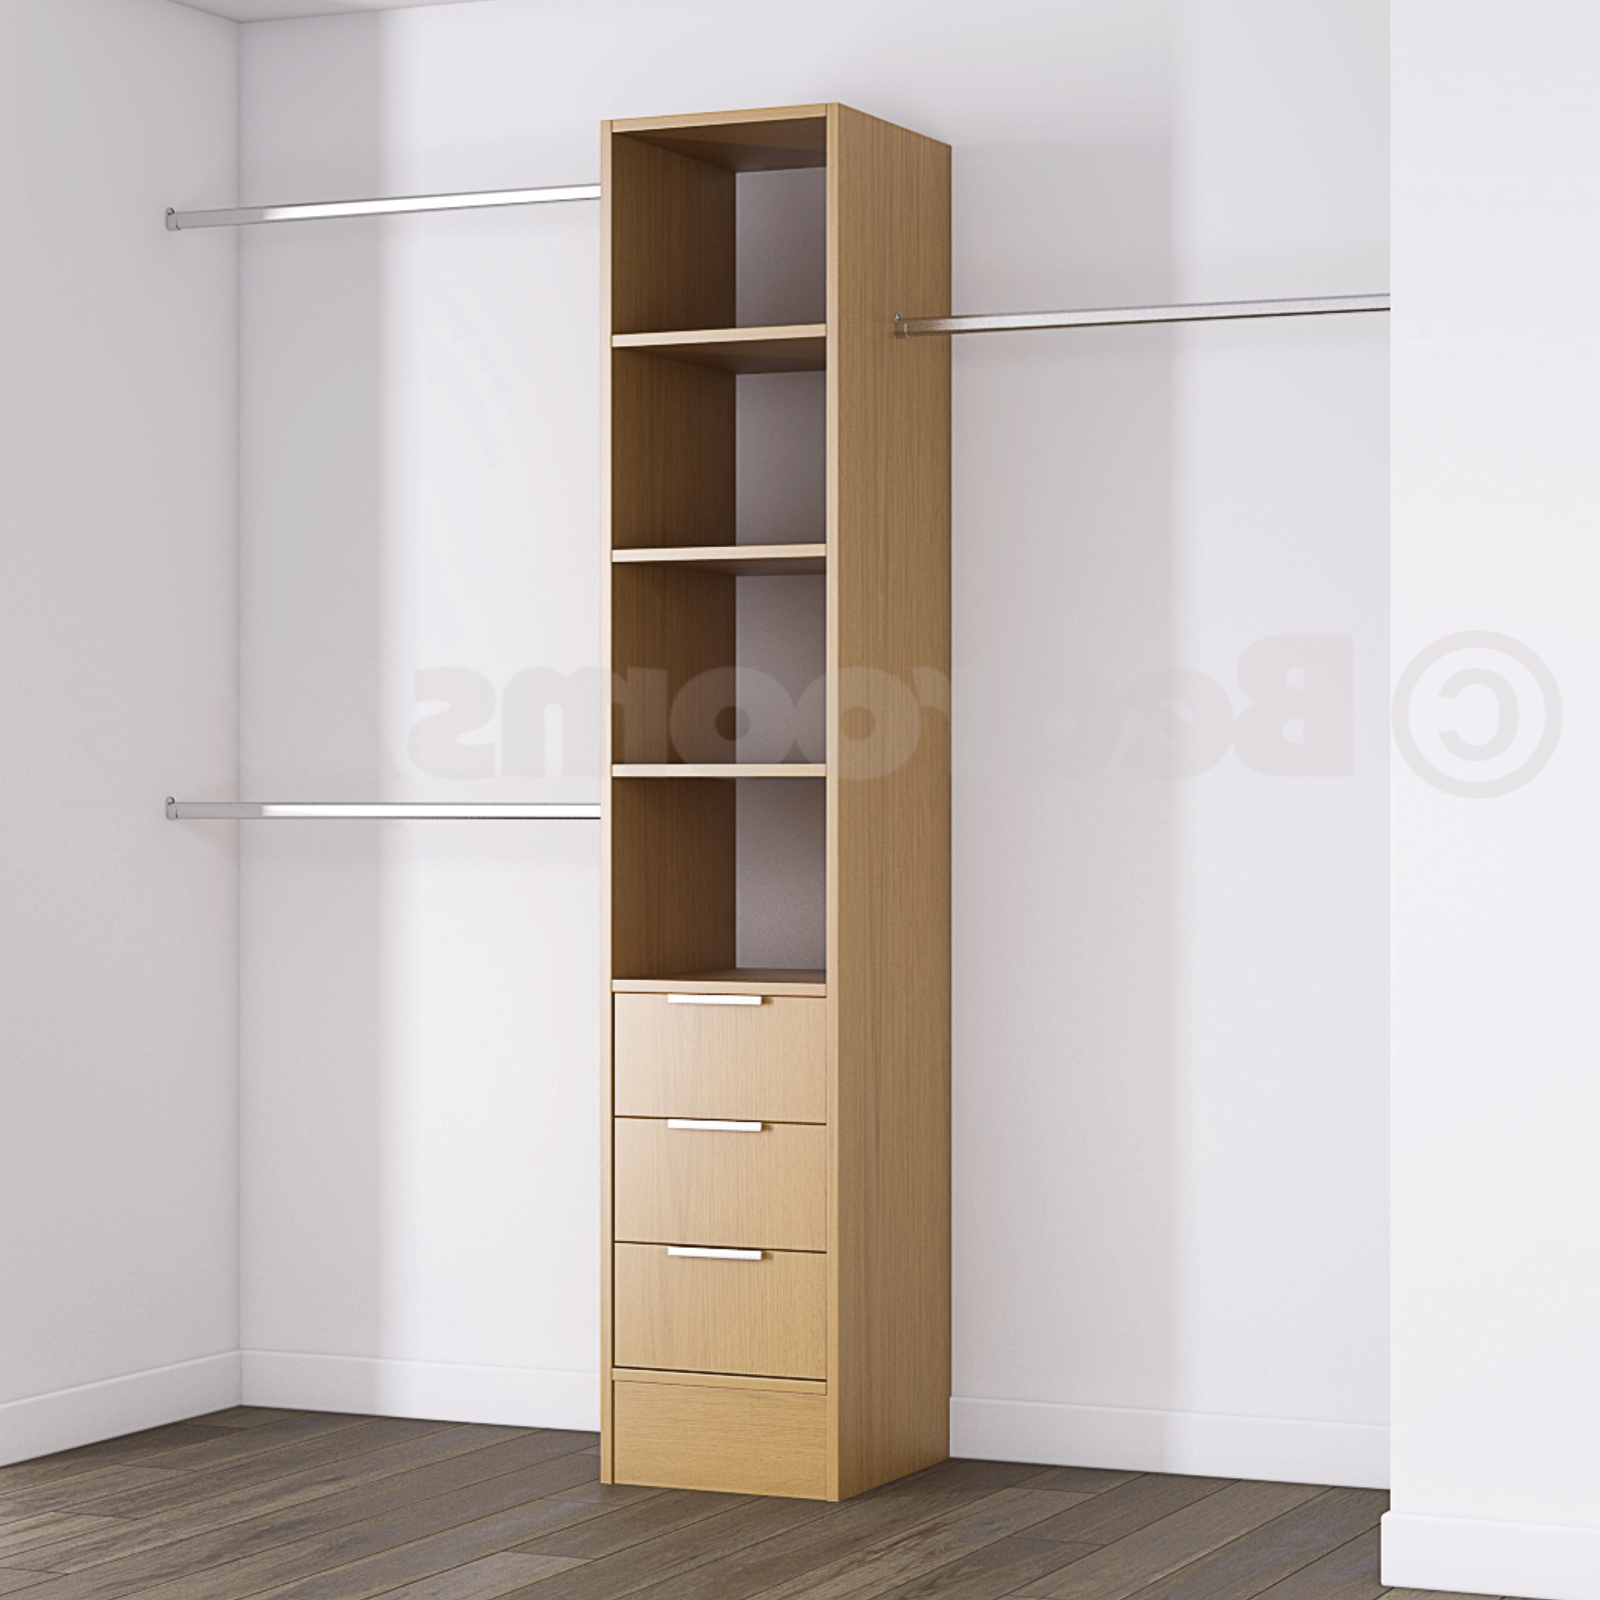 Wardrobe Shelves, Drawers And Storage For Sliding Wardrobes In Well Known Wardrobes With Shelves And Drawers (View 9 of 15)